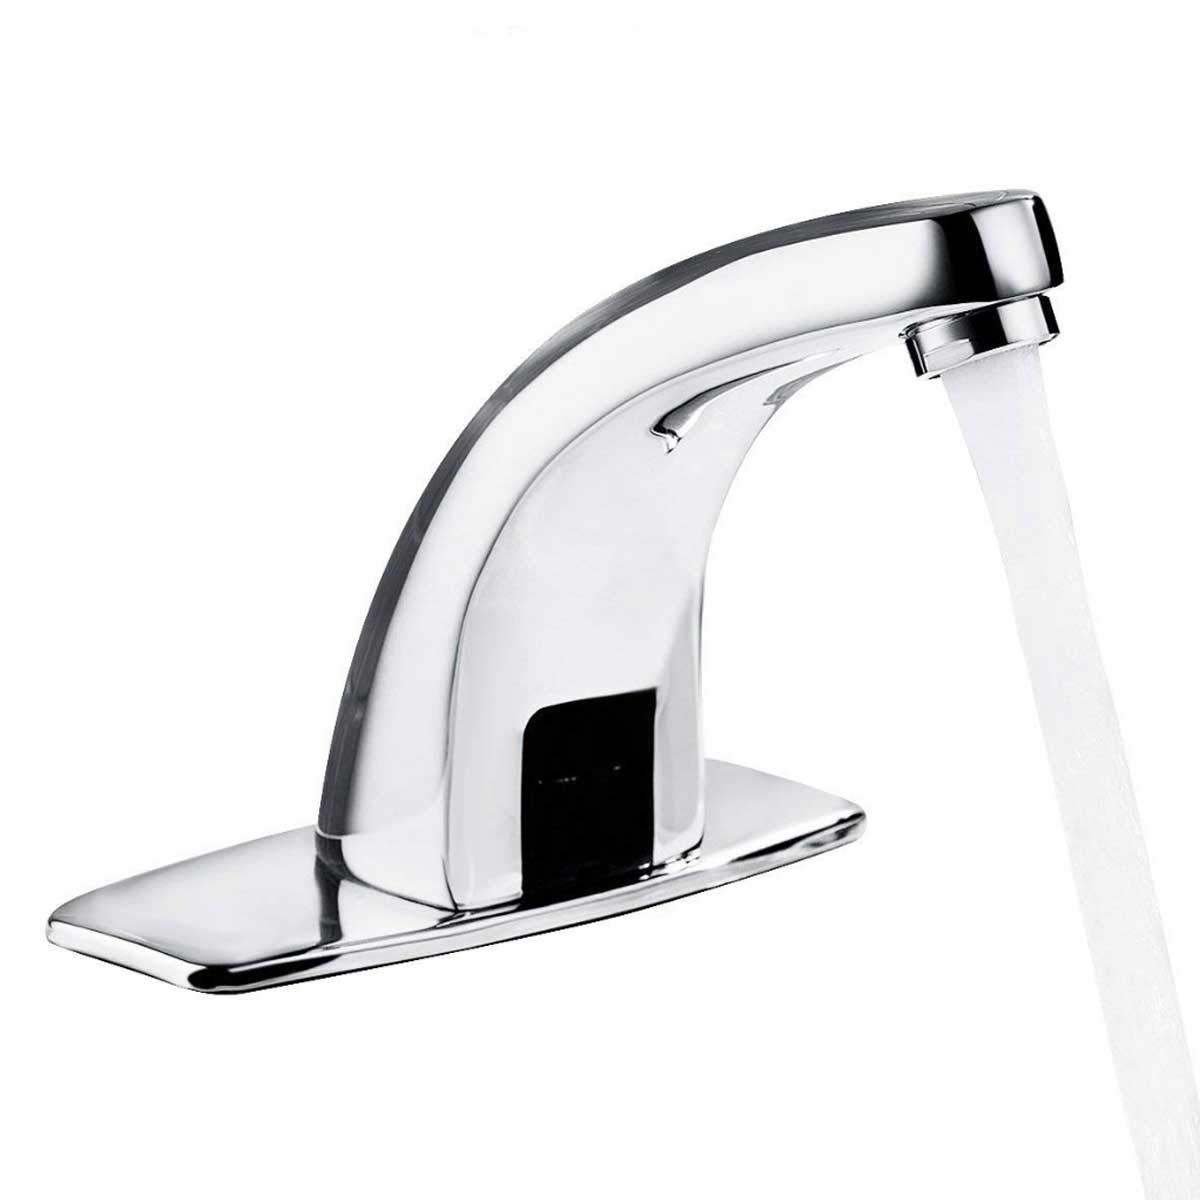 Yosoo Automatic Infrared Sensor Faucet, Zinc Alloy Smart Touchless Sink Faucet Kitchen Bathroom Water Tap (1)